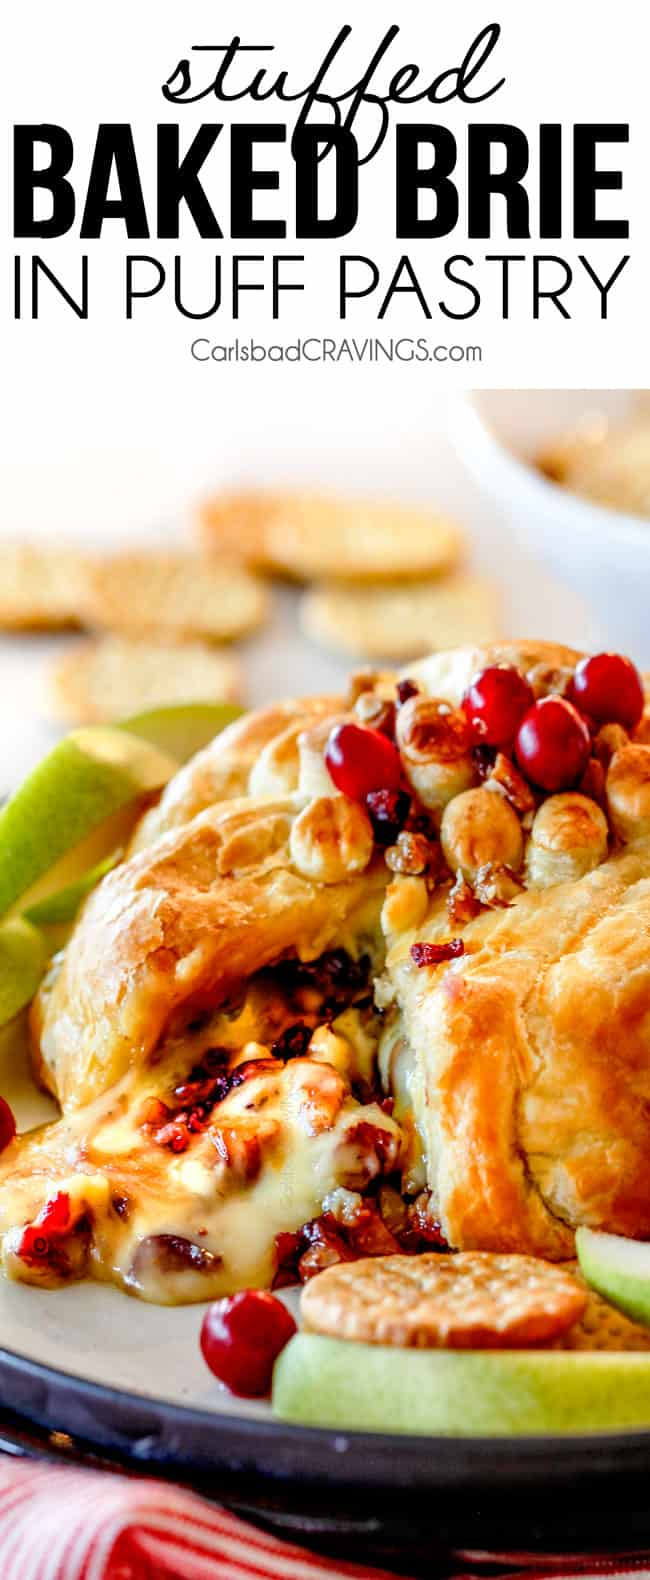 Stuffed Baked Brie In Puff Pastry With Step By Step Photos Watermelon Wallpaper Rainbow Find Free HD for Desktop [freshlhys.tk]